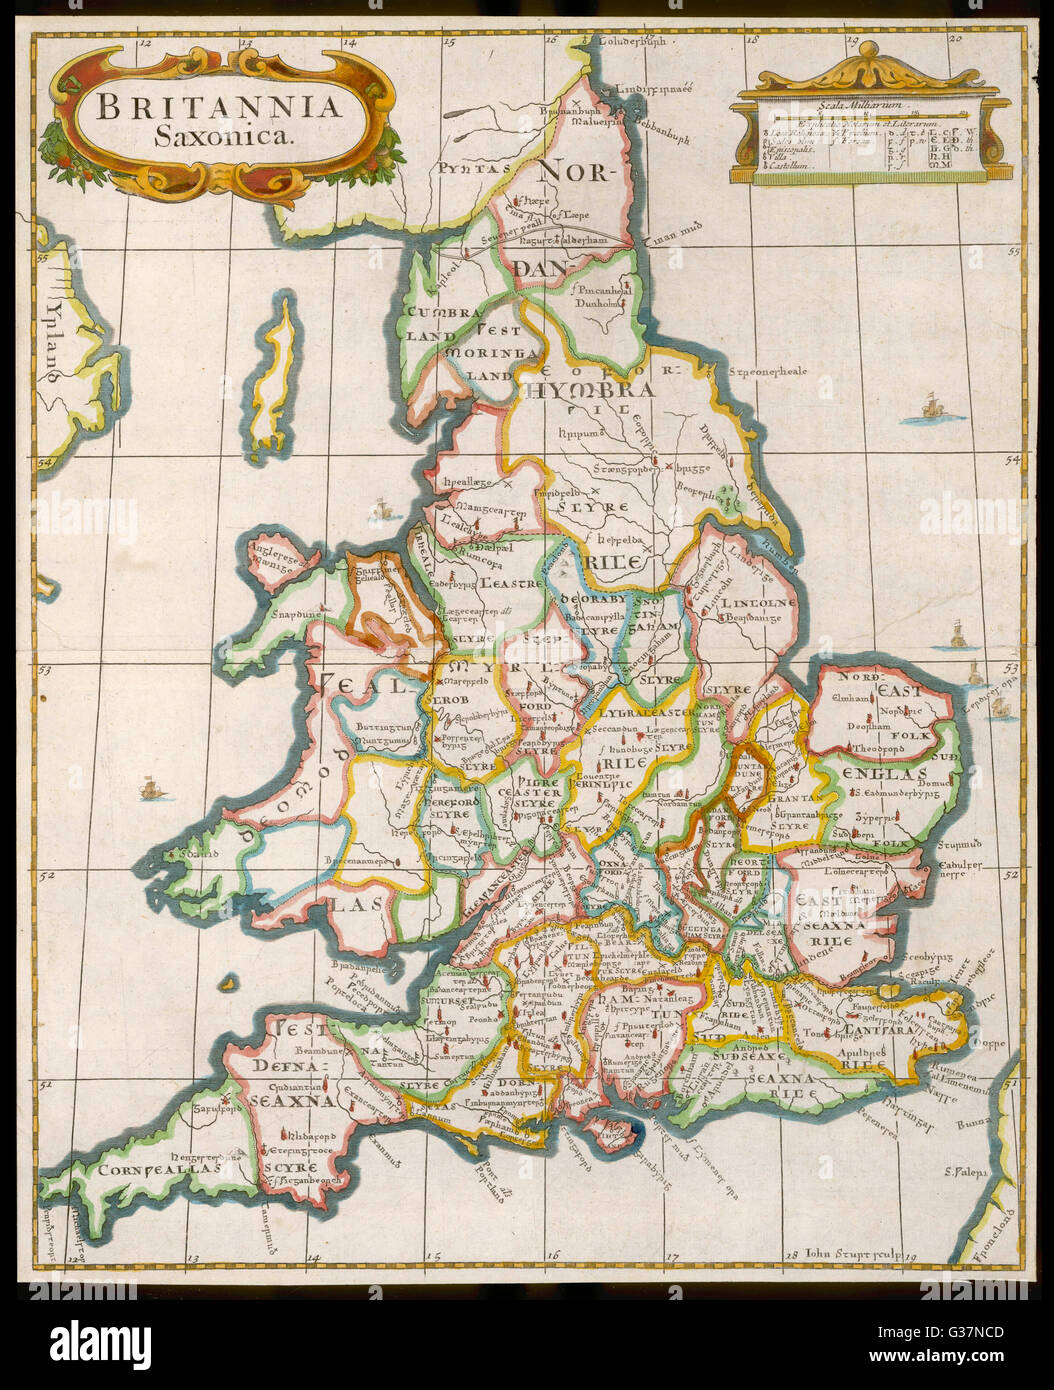 Map Of England In 9th Century.England And Wales During The Saxon Era Date Circa 9th Stock Photo